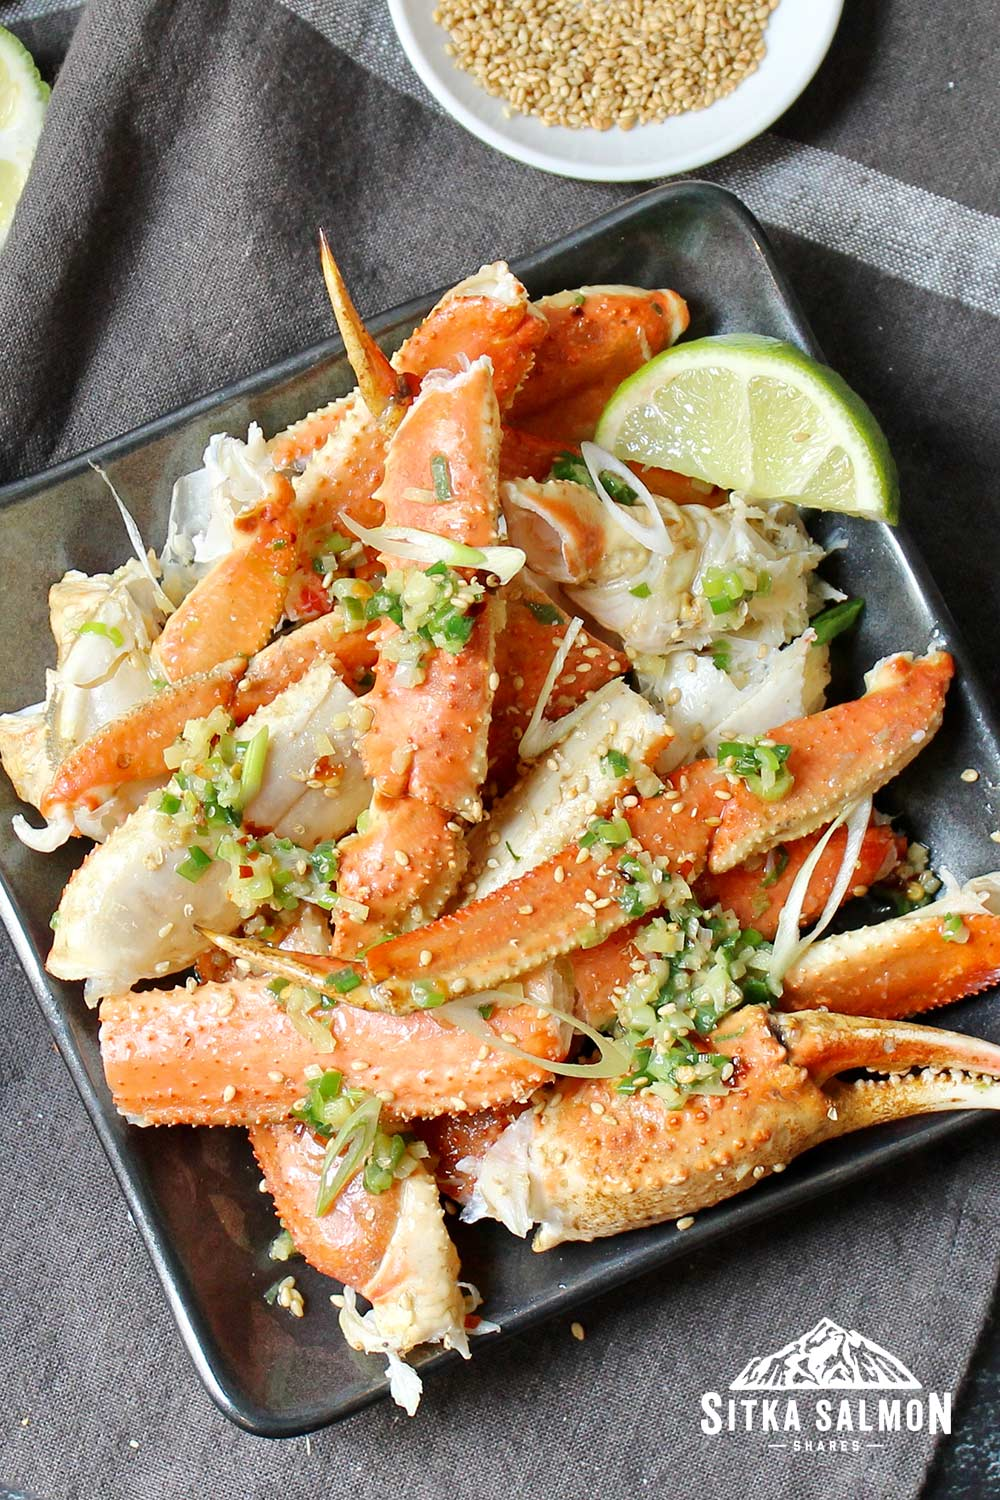 Stir-fried Crab Legs with Ginger-Scallion Butter Recipe | Sitka Salmon Shares